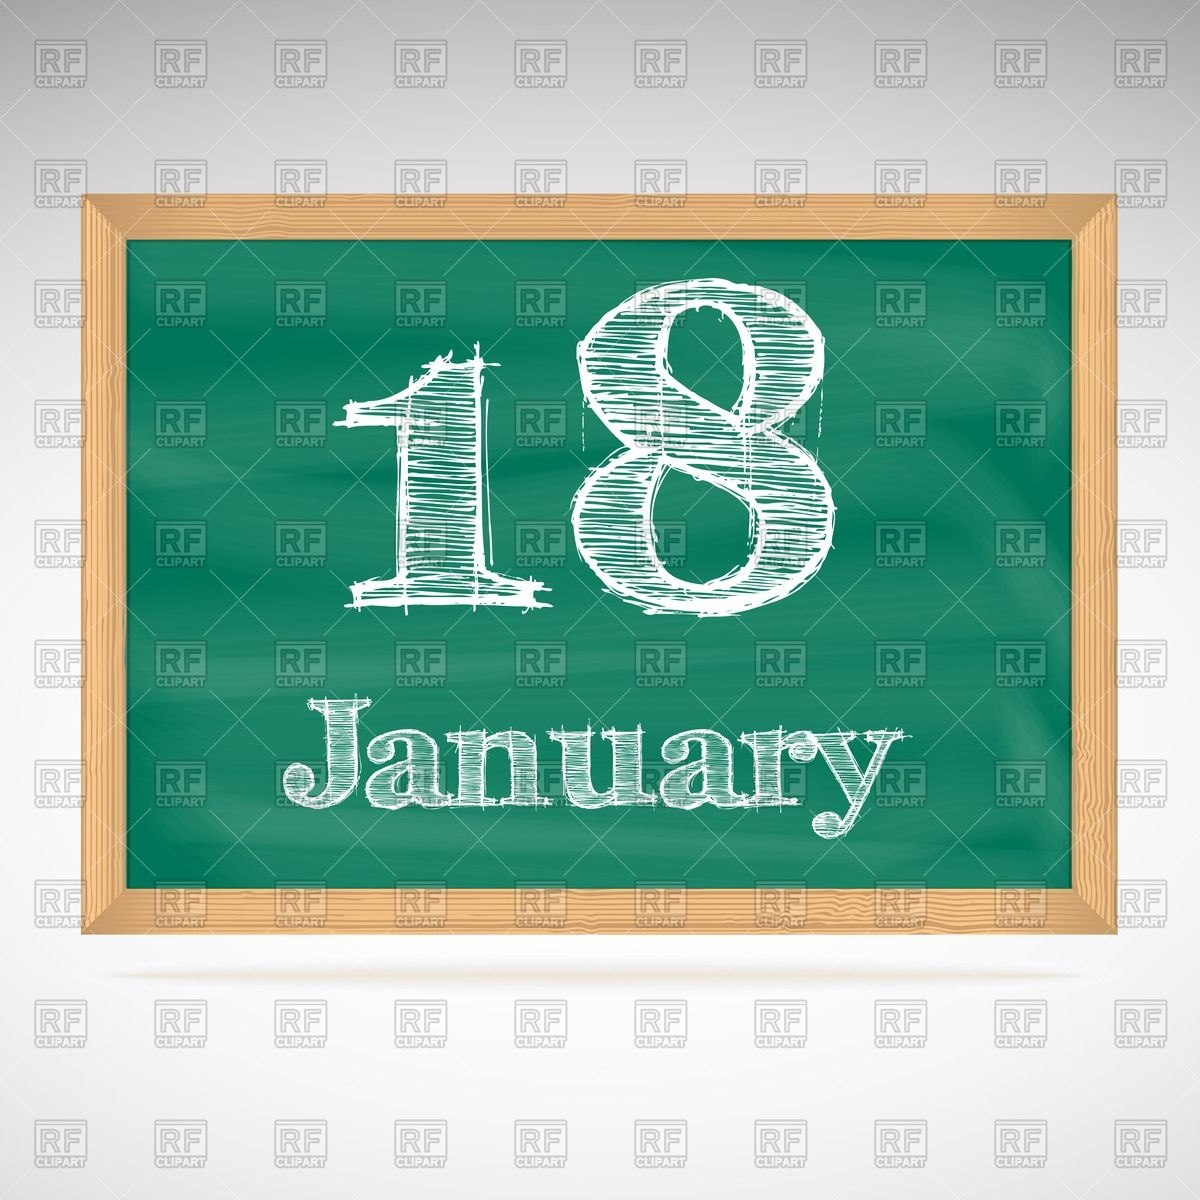 January 18th calendar clipart graphic black and white library School blackboard calendar with inscription in chalk January 18 ... graphic black and white library